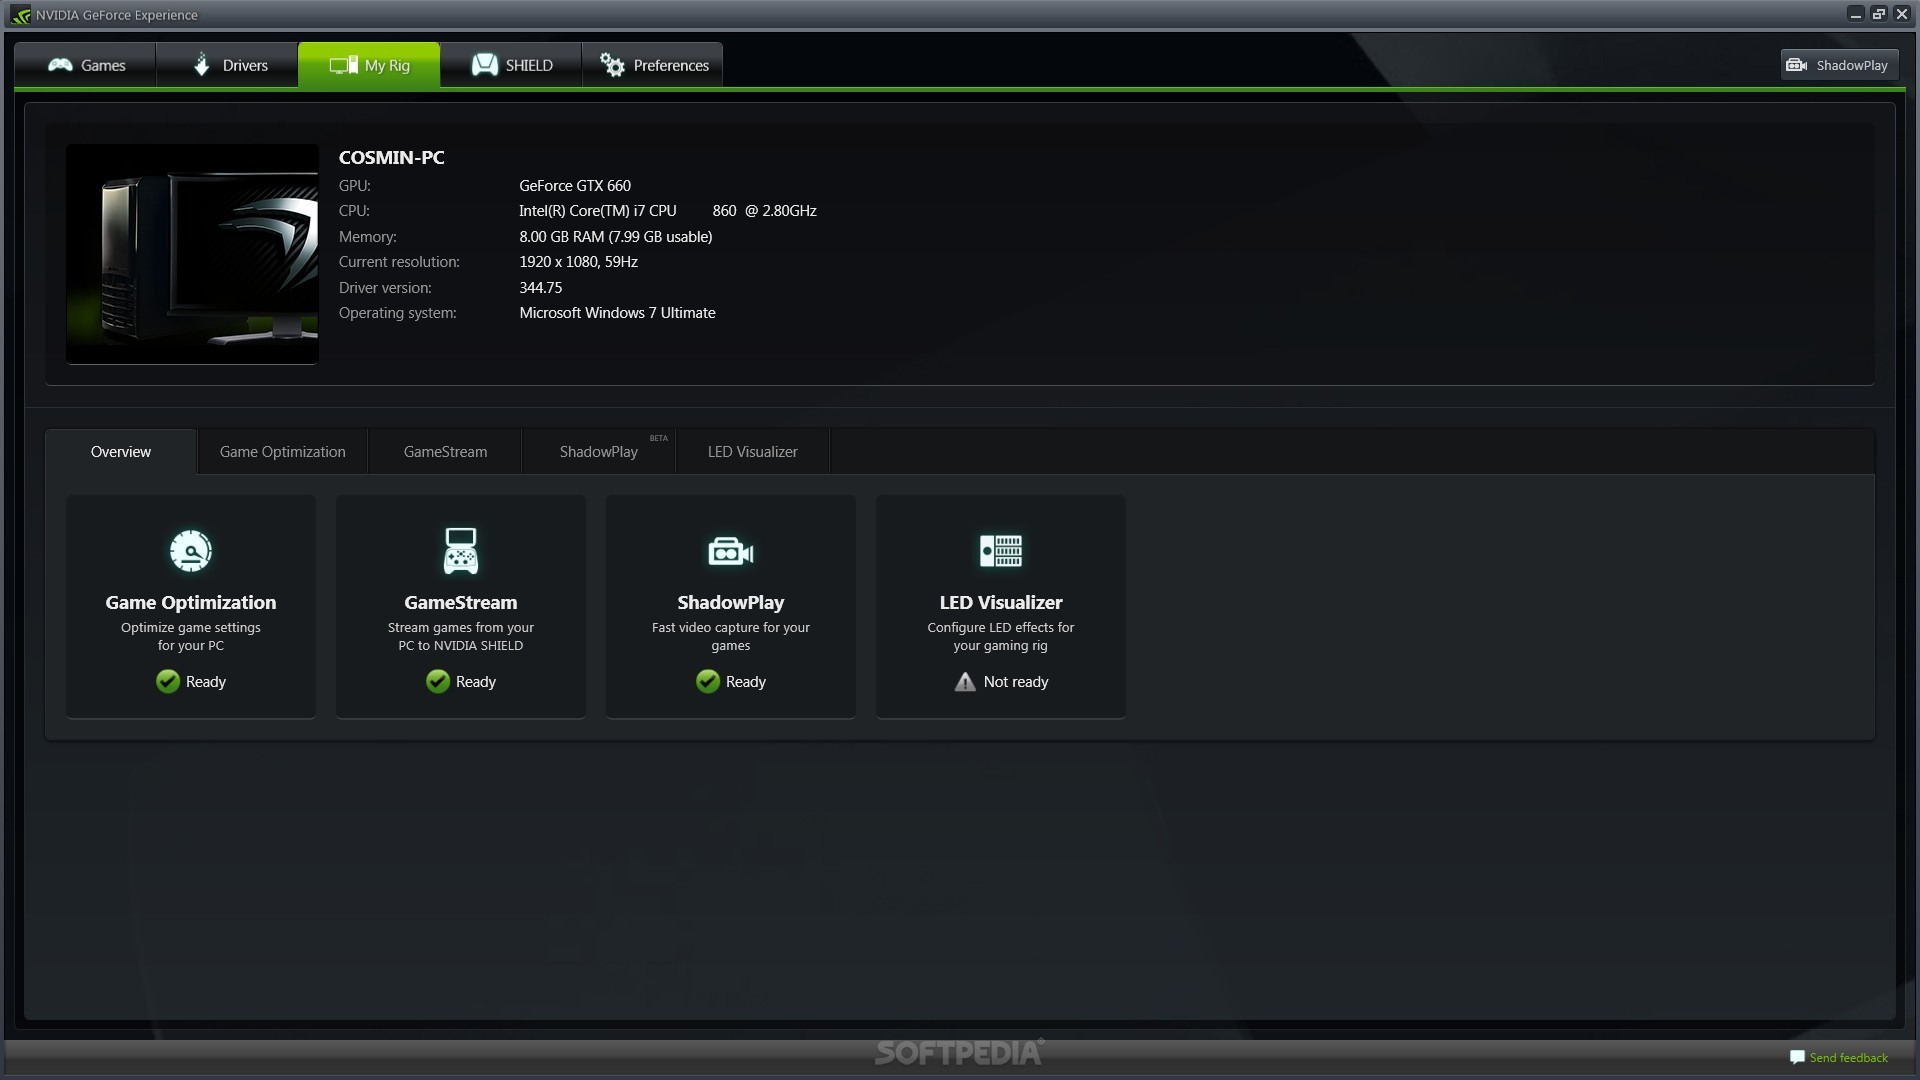 Nvidia Game Settings